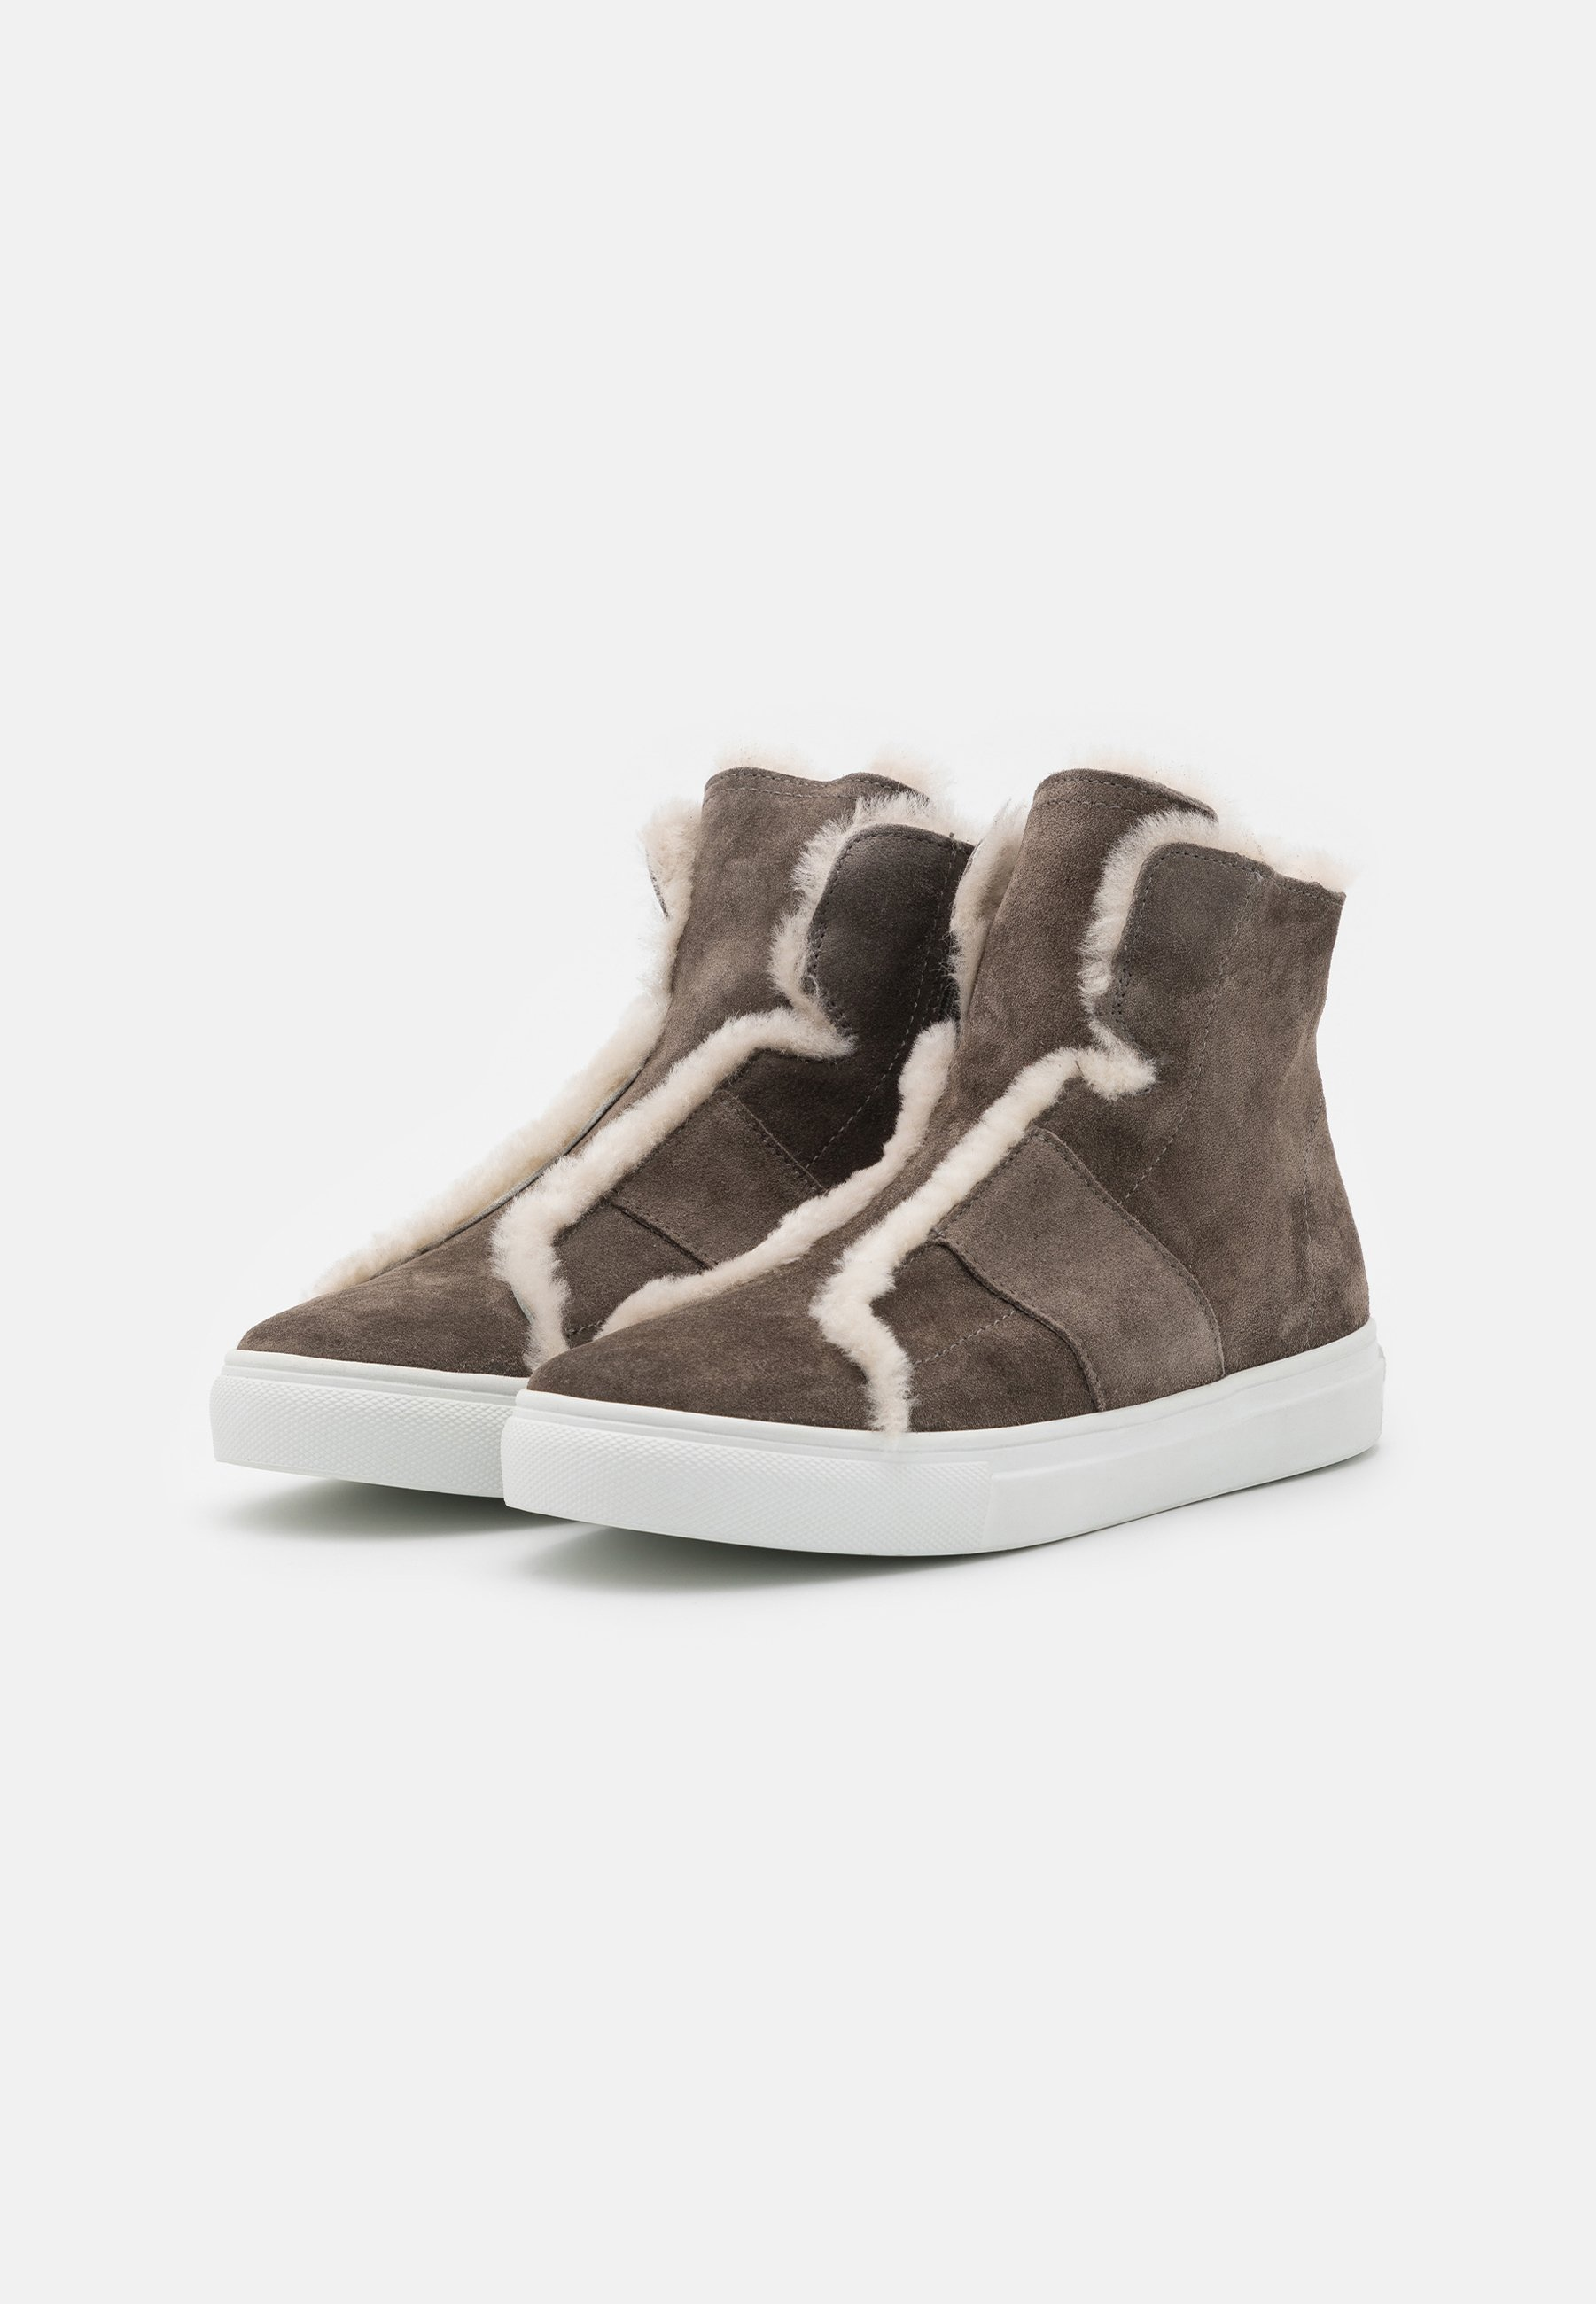 Kennel + Schmenger BASKET Ankle Boot piombo/weiß/taupe